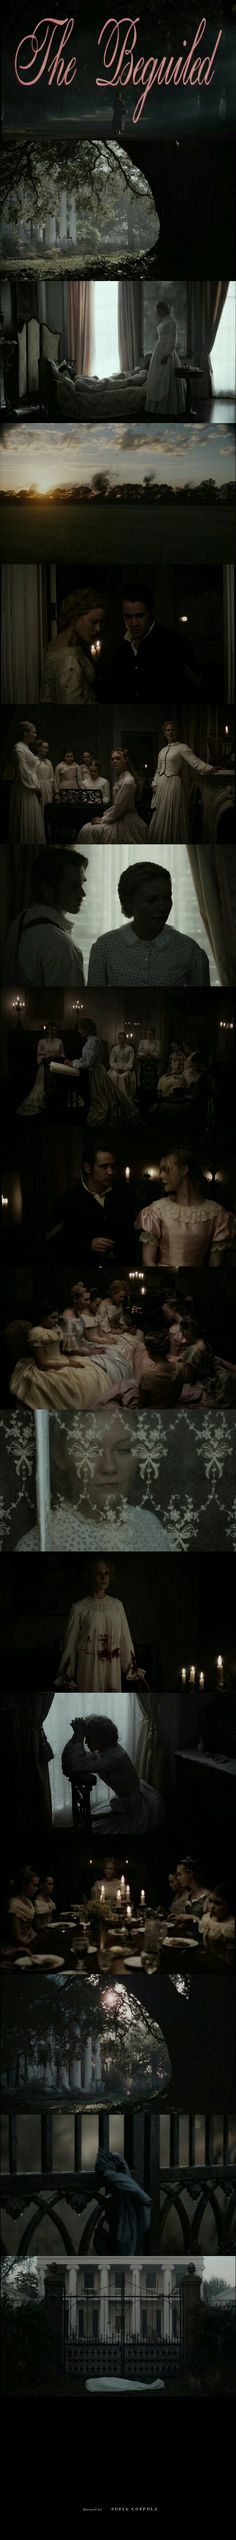 The Beguiled (2017) Directed by Sofia Coppola